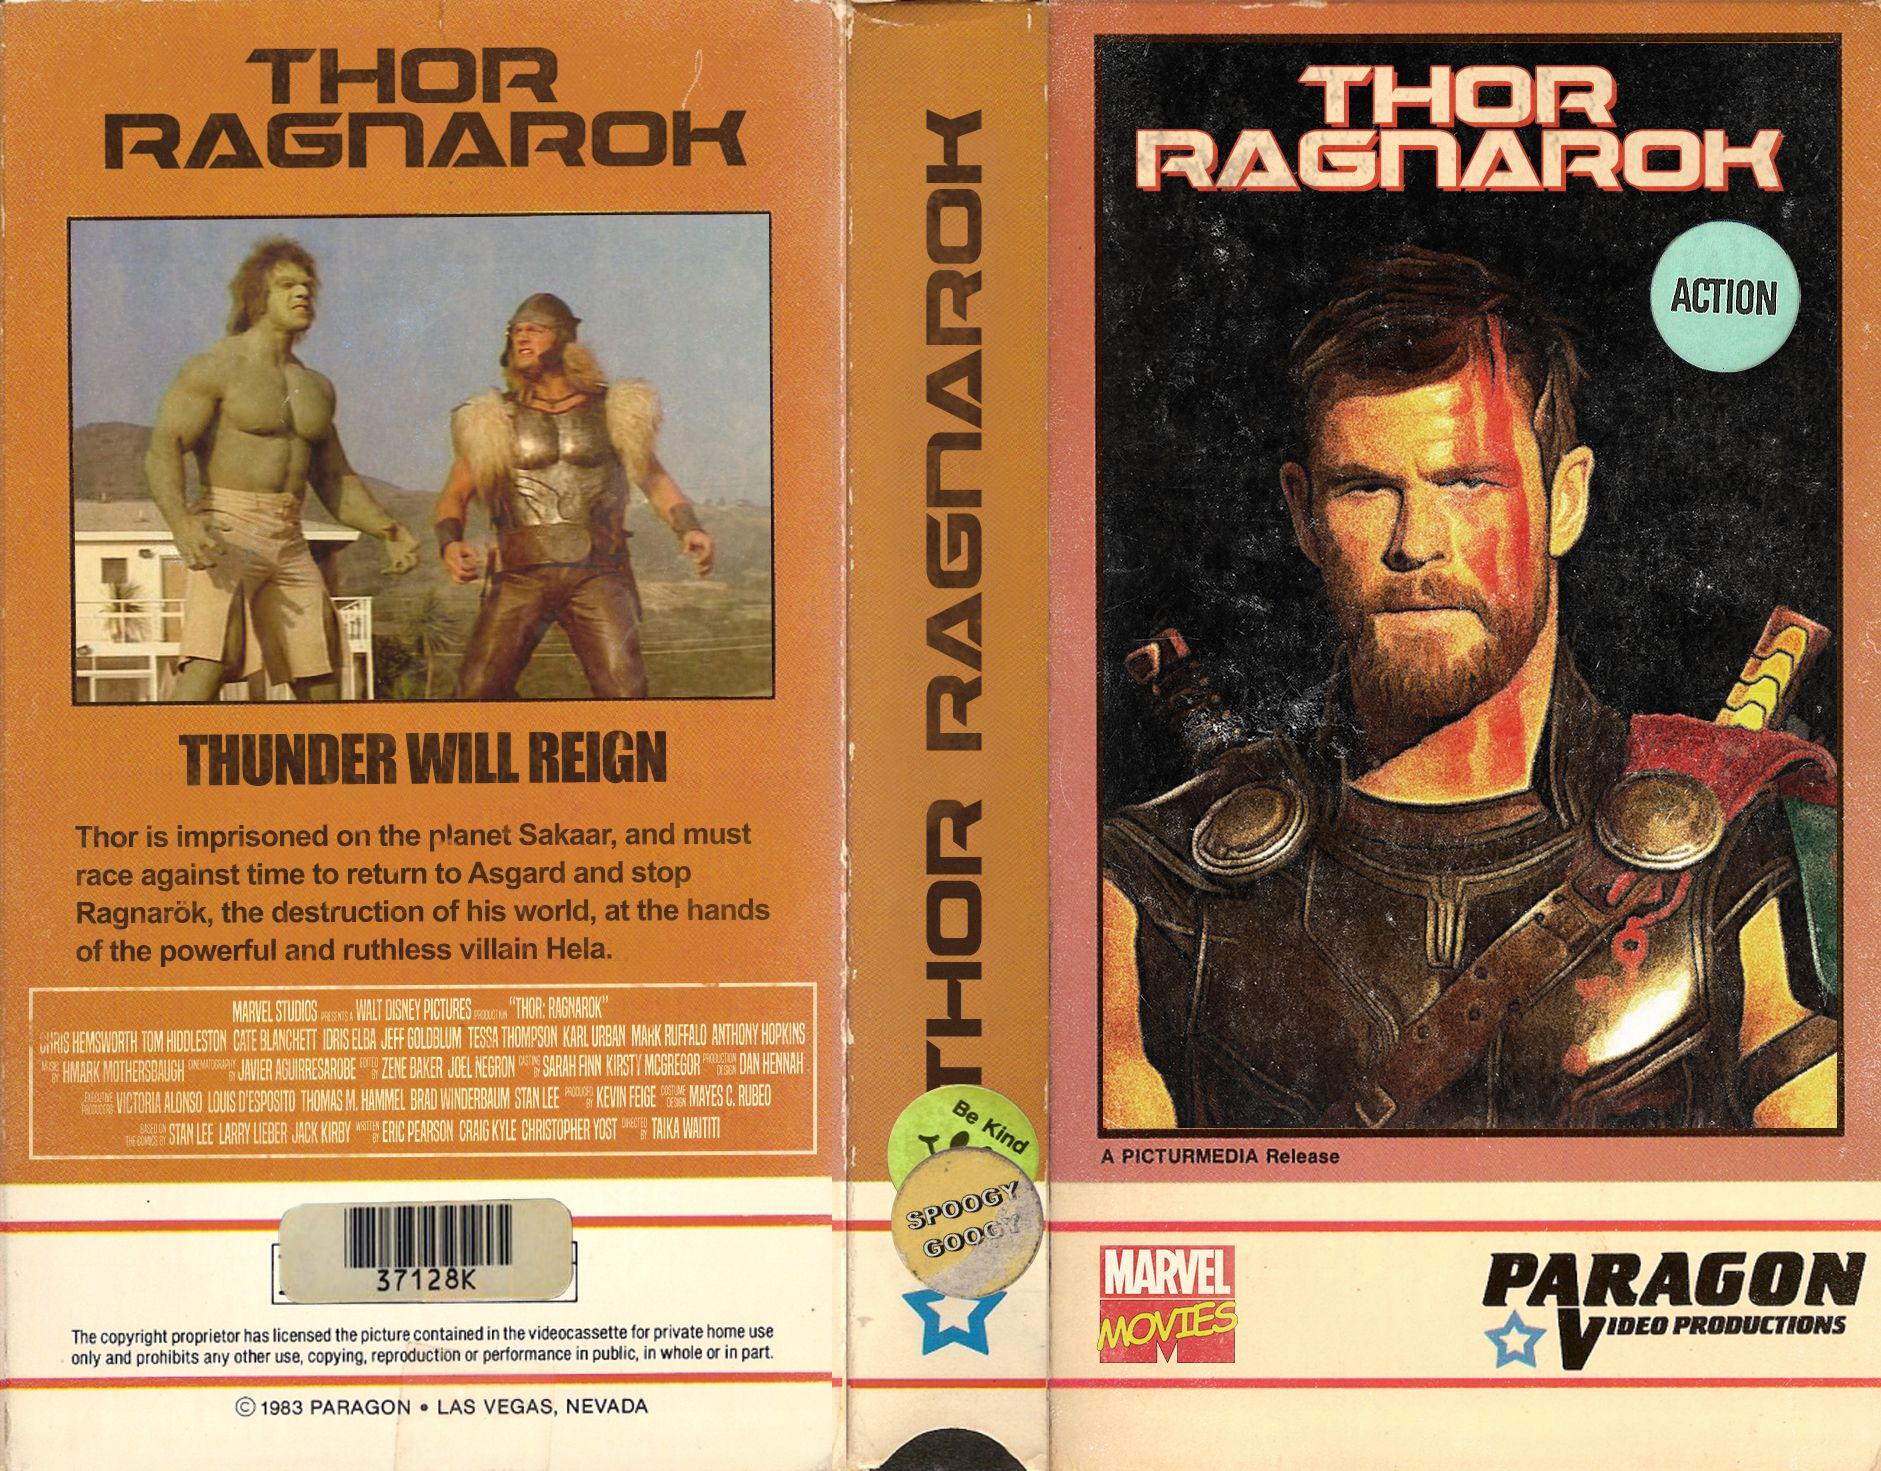 Thor Ragnarak Vhs Cover Art Thor Funny Images Book Cover